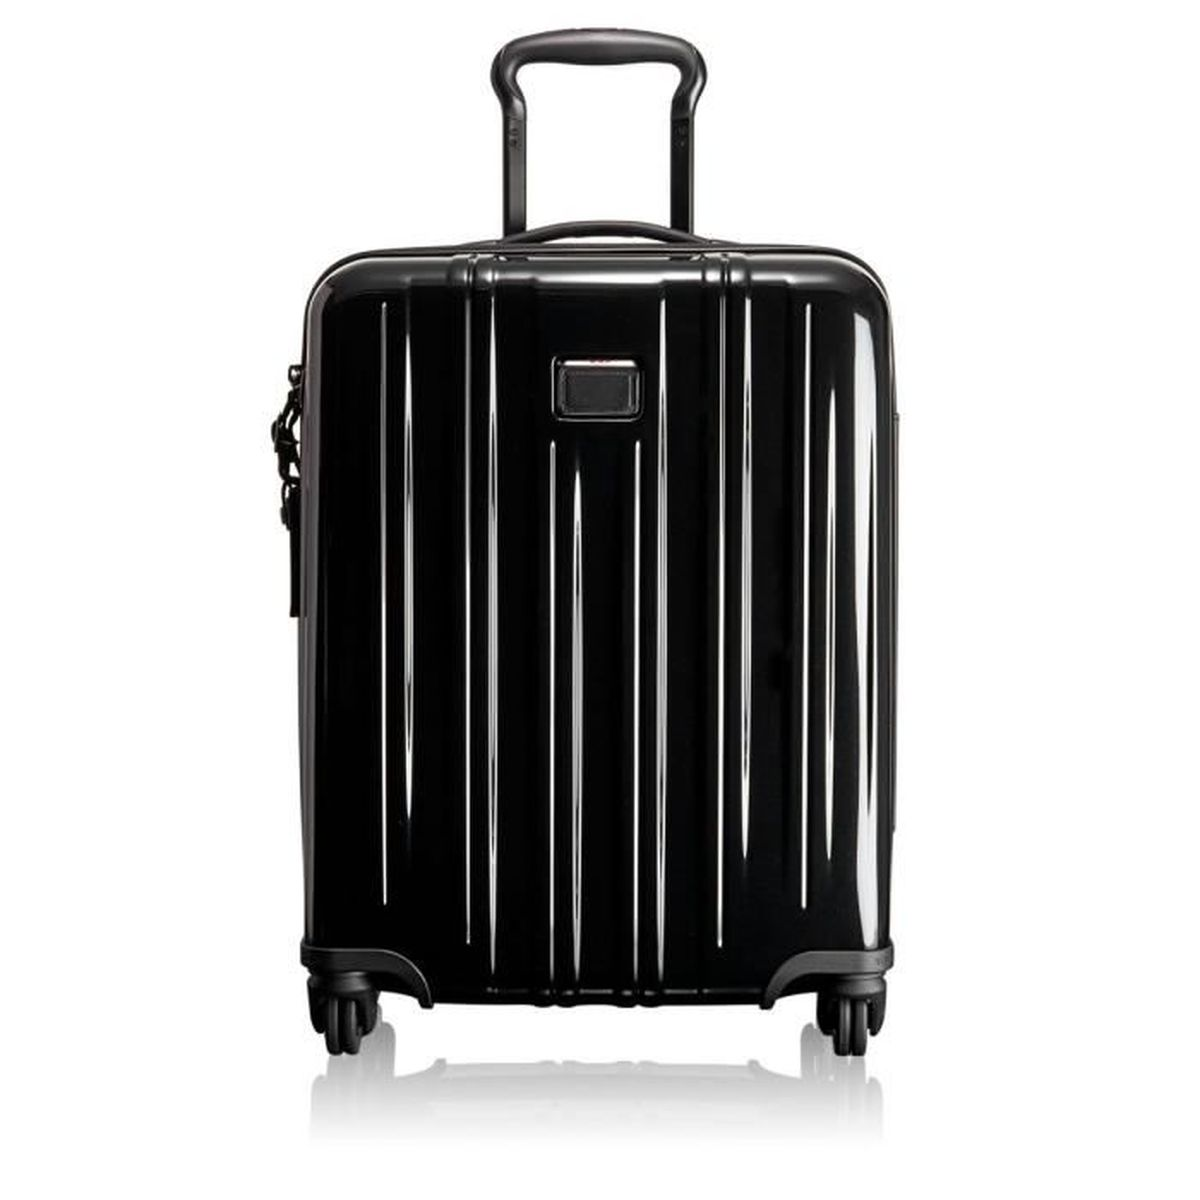 tumi bagage main international mince v3 228007 black55 cm achat vente valise bagage. Black Bedroom Furniture Sets. Home Design Ideas